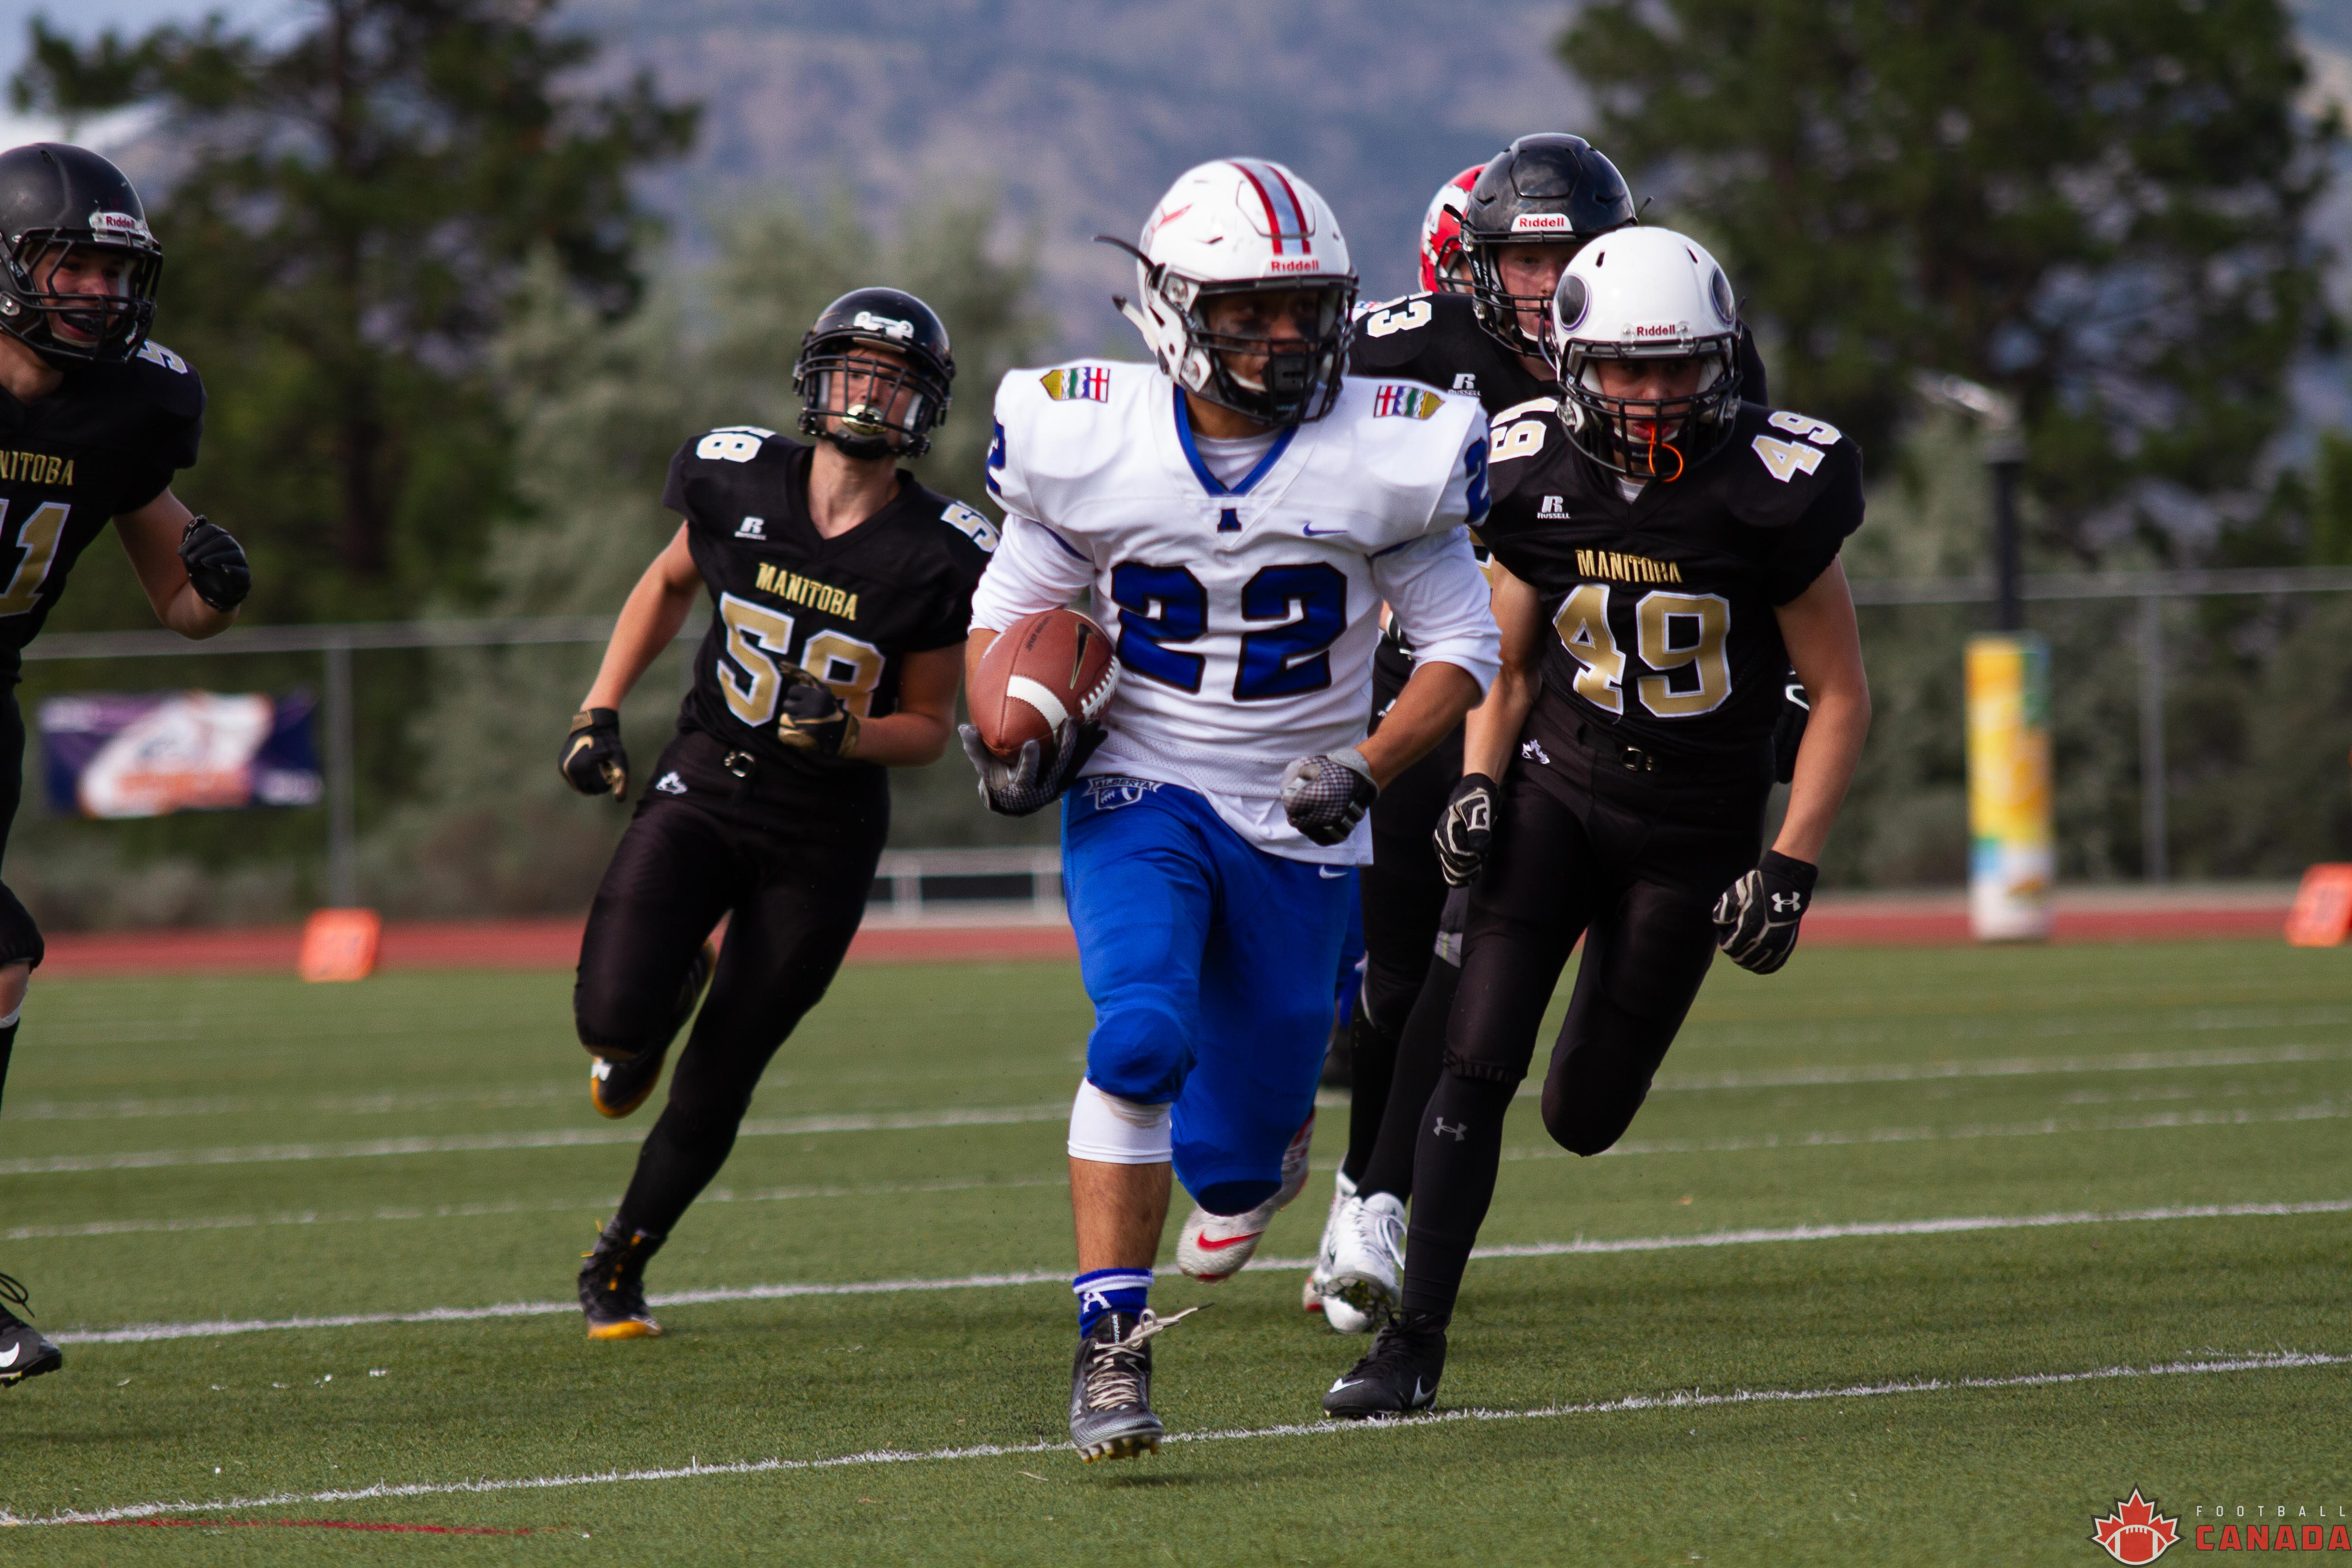 Under-16 Western Challenge: Alberta's dominance leads to bronze medal victory over Manitoba